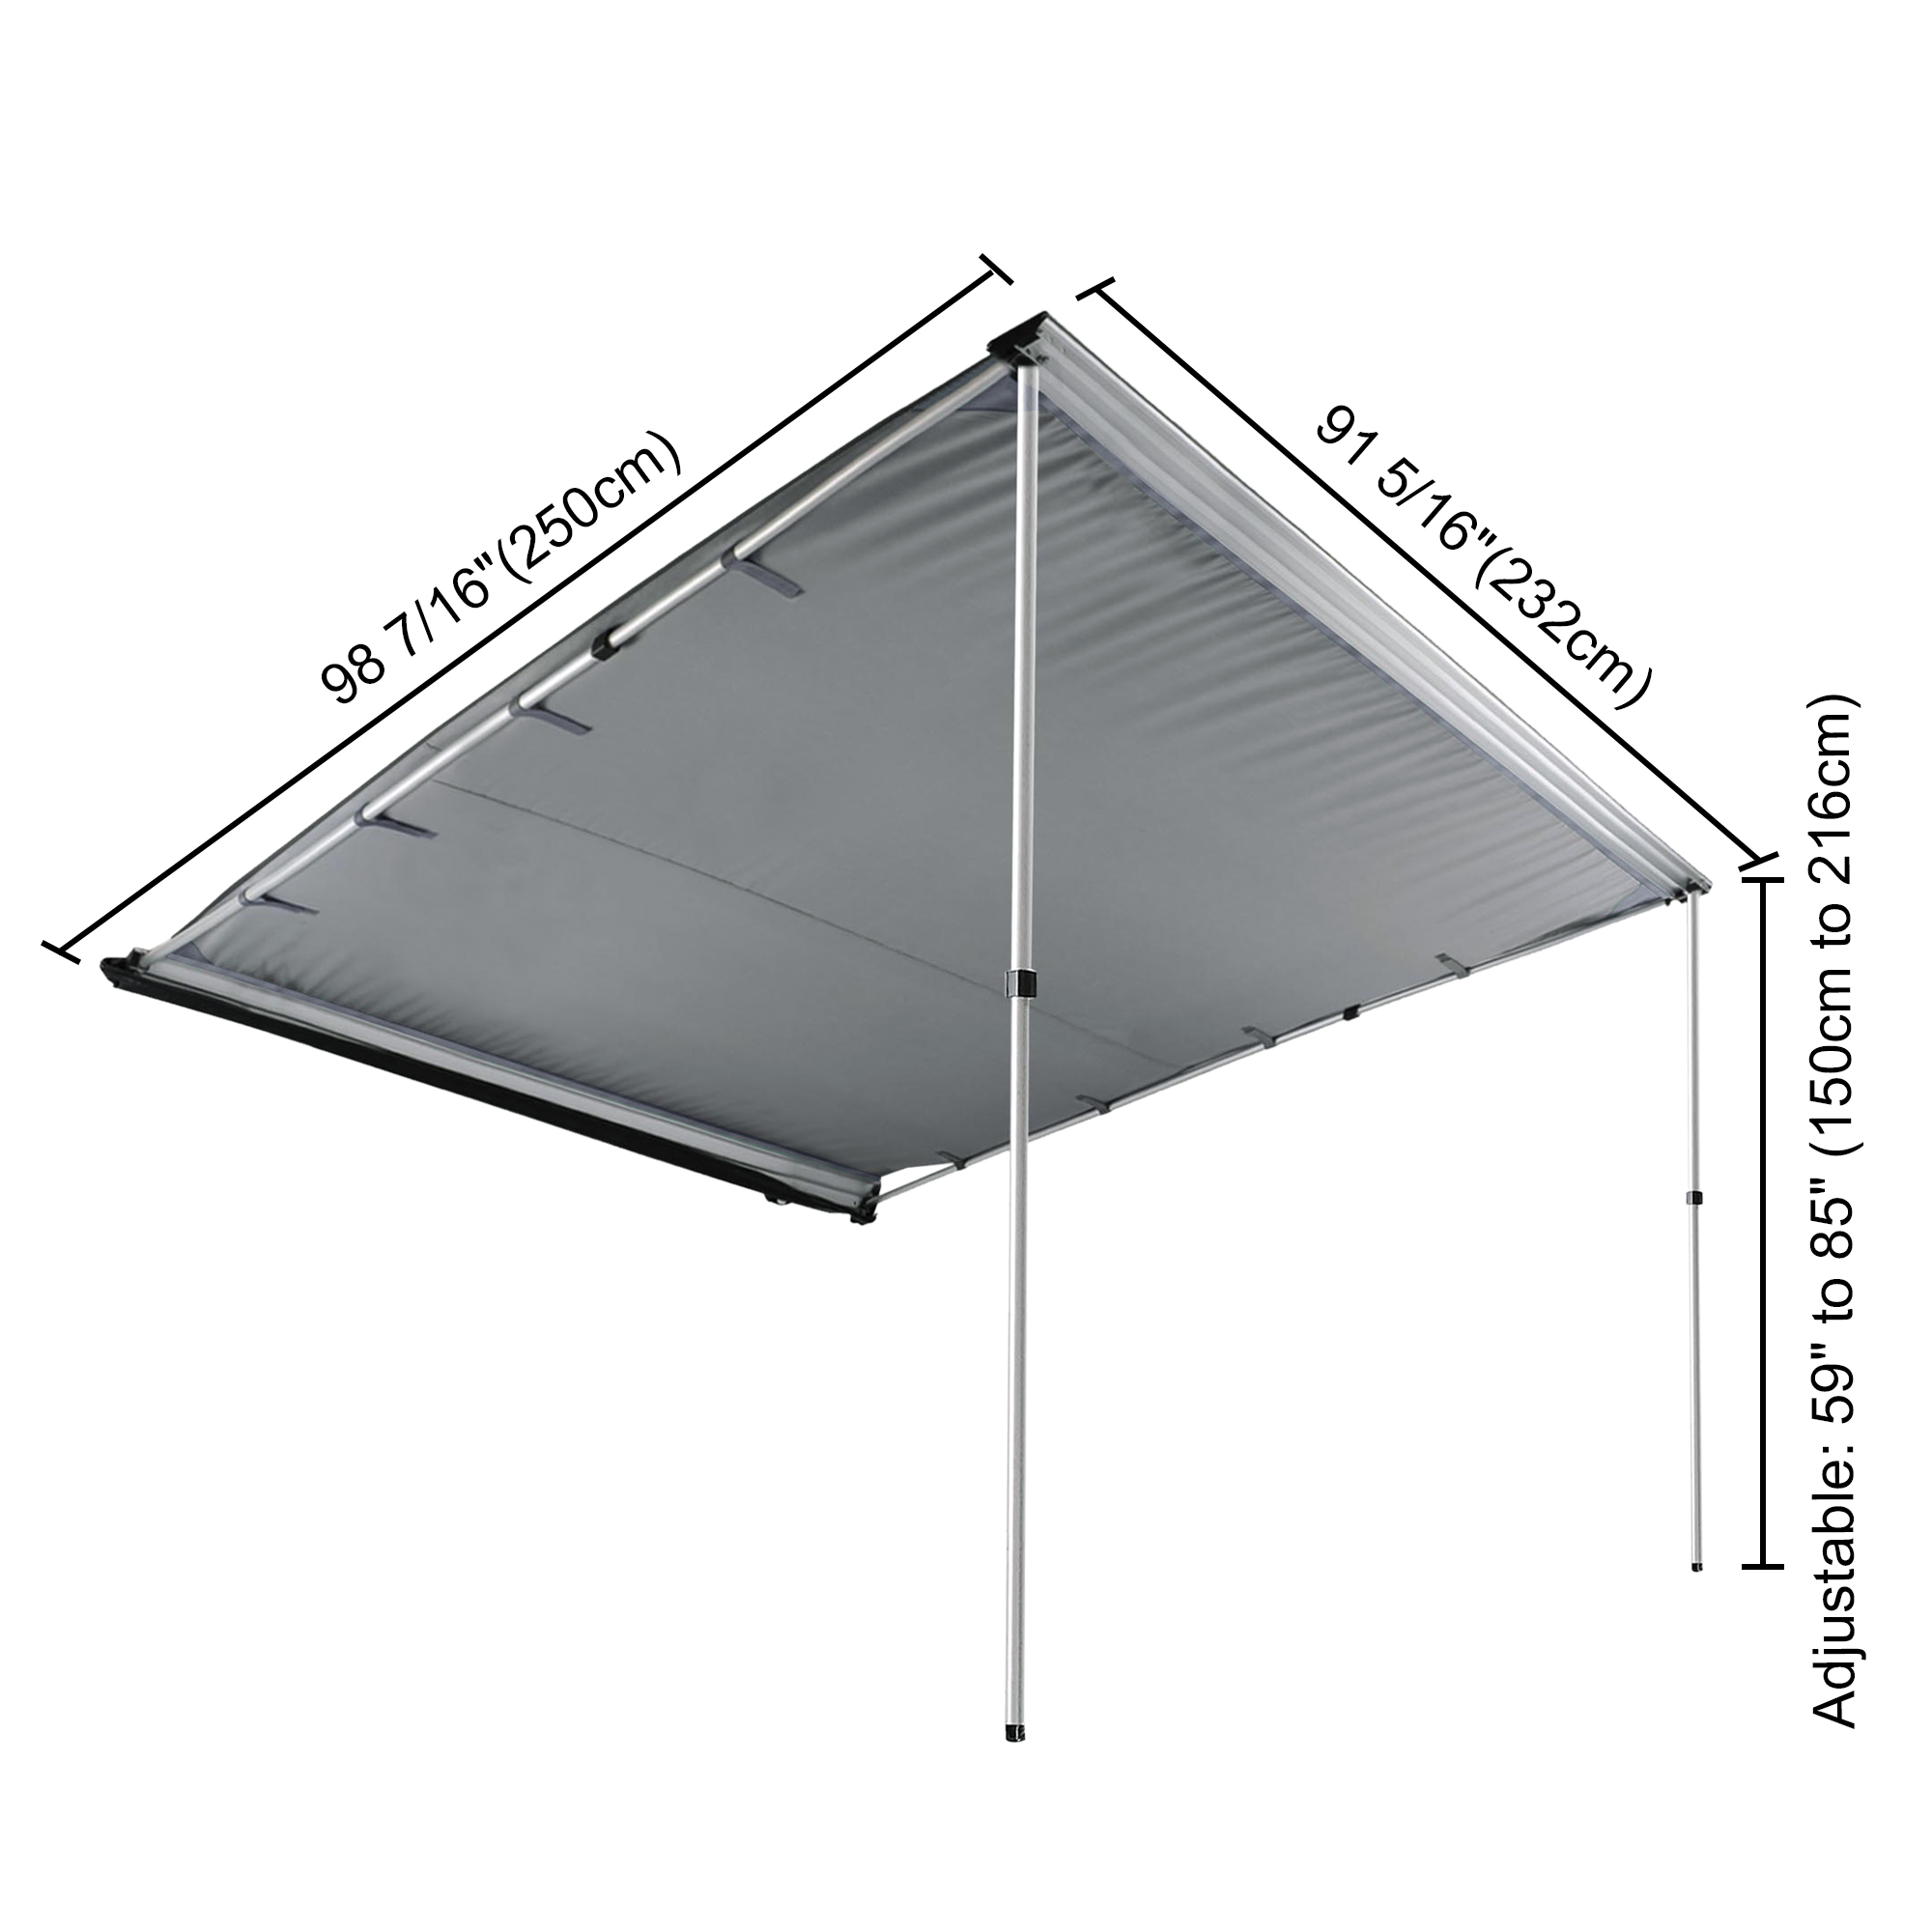 2x2M Car Side Awning Roof Top Tent Oxford Sun Shade Shelter Car Tent Grey Color